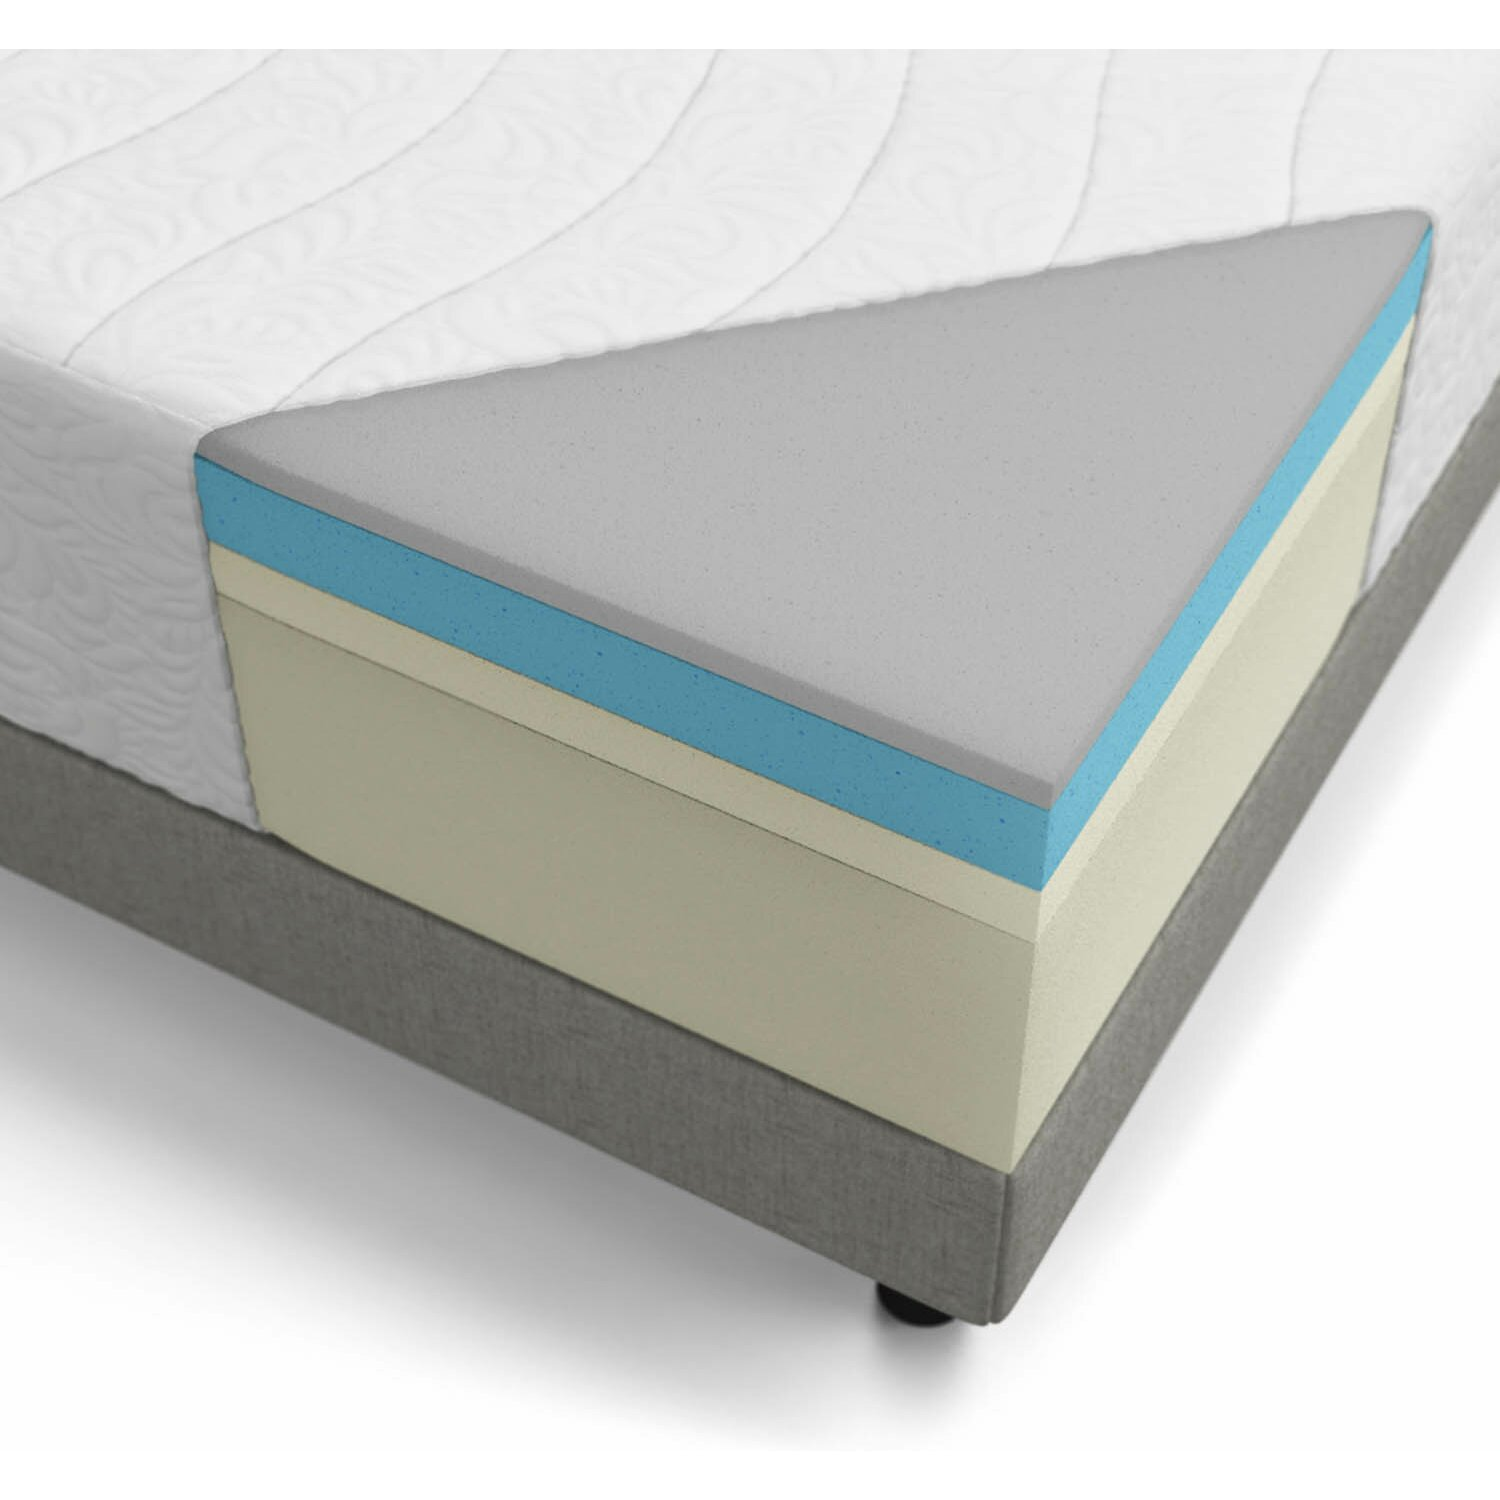 "Lucid 16"" Plush Hybrid Mattress & Reviews"